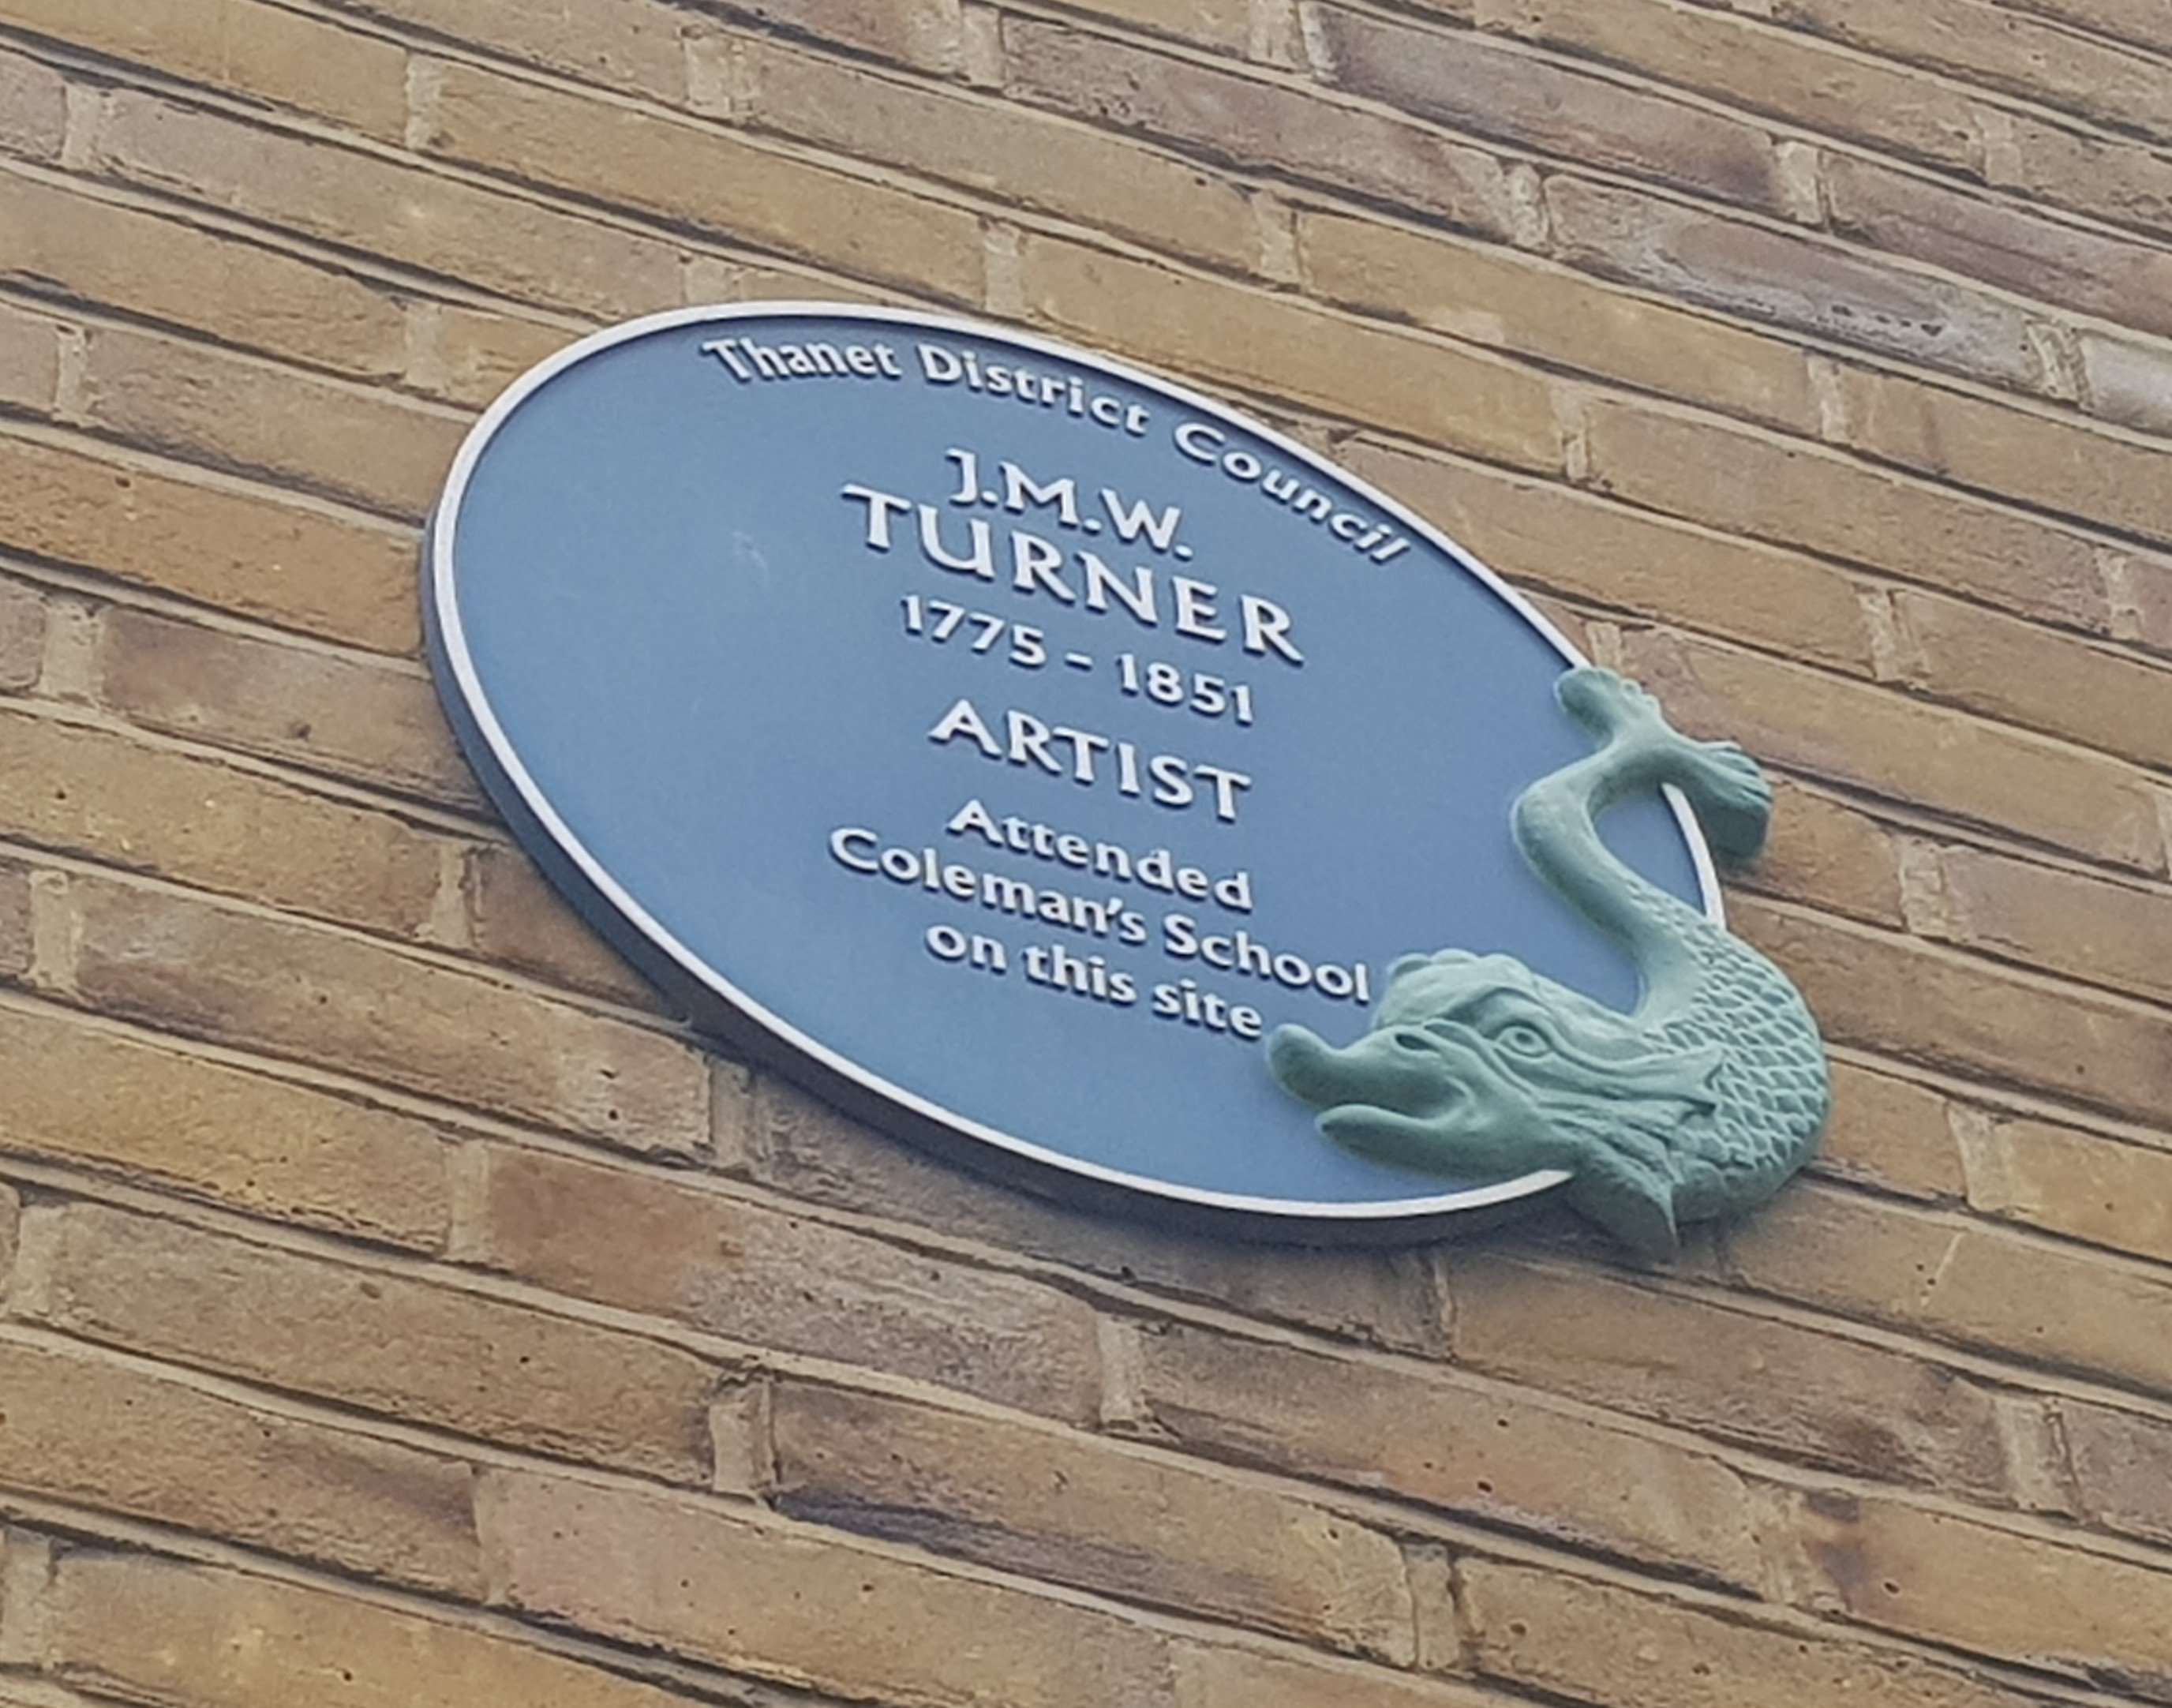 JMW Turner Blue Plaque